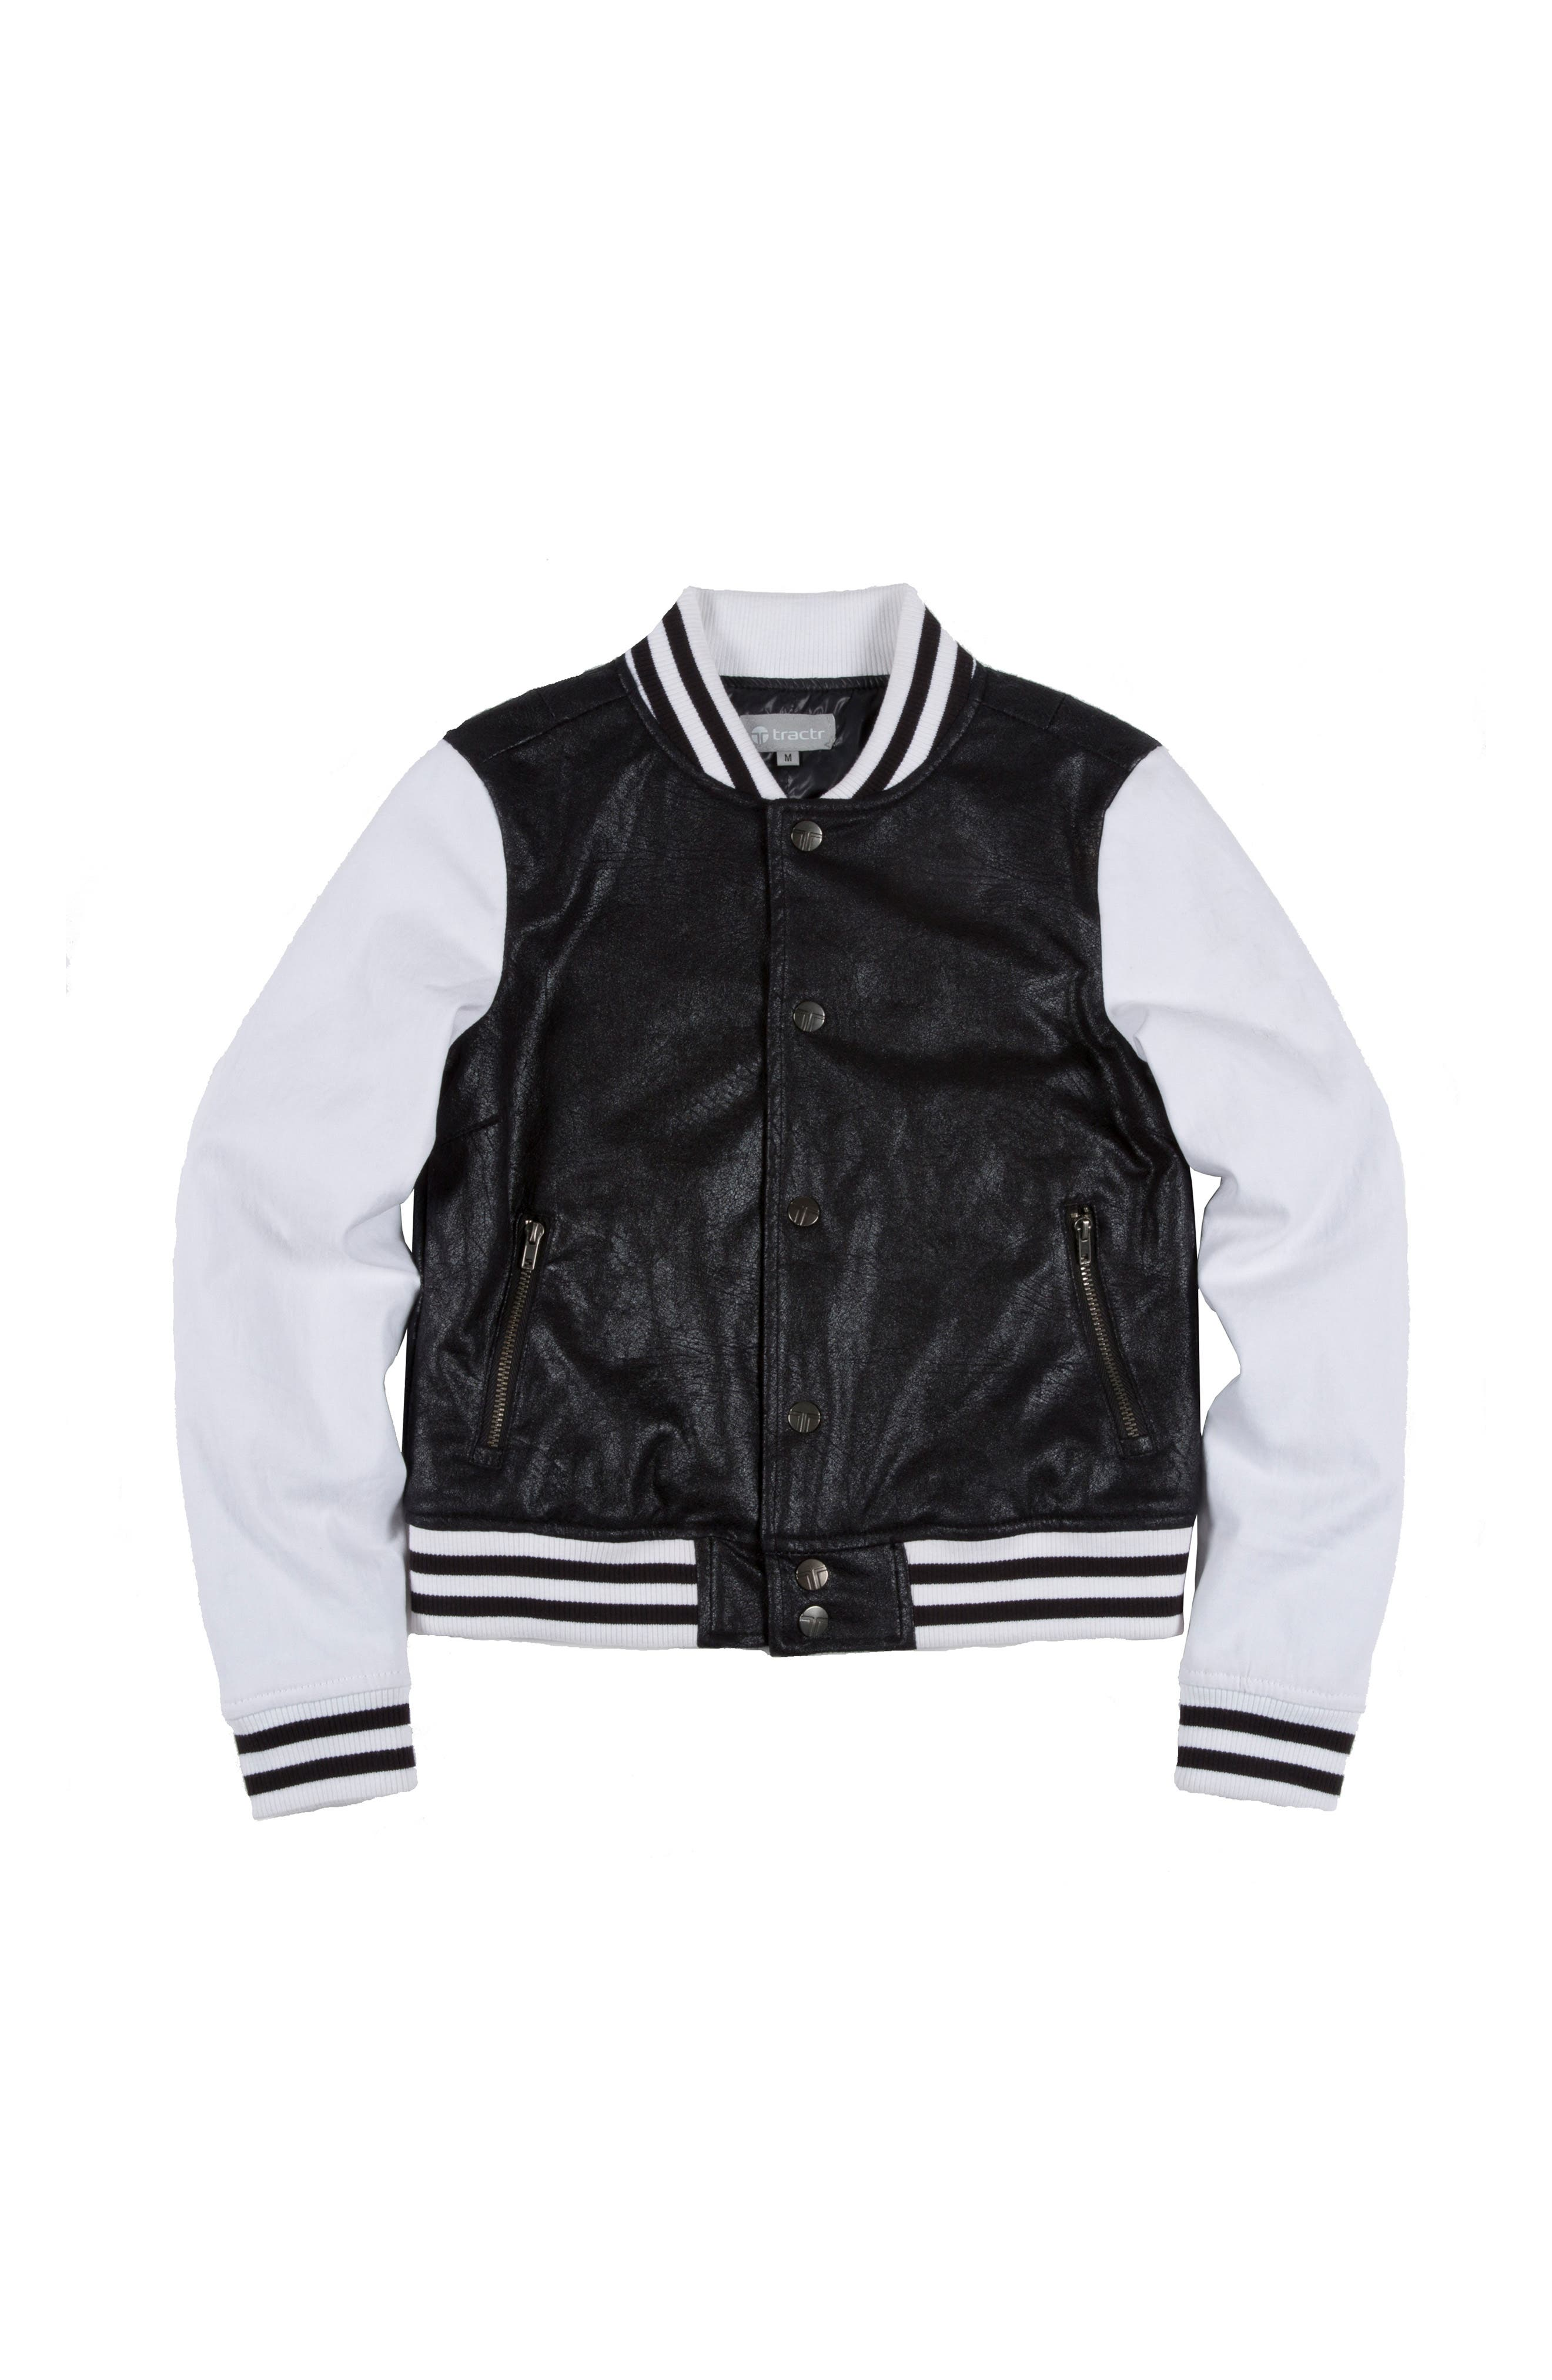 Tractr Mixed Media Baseball Jacket (Big Girls)